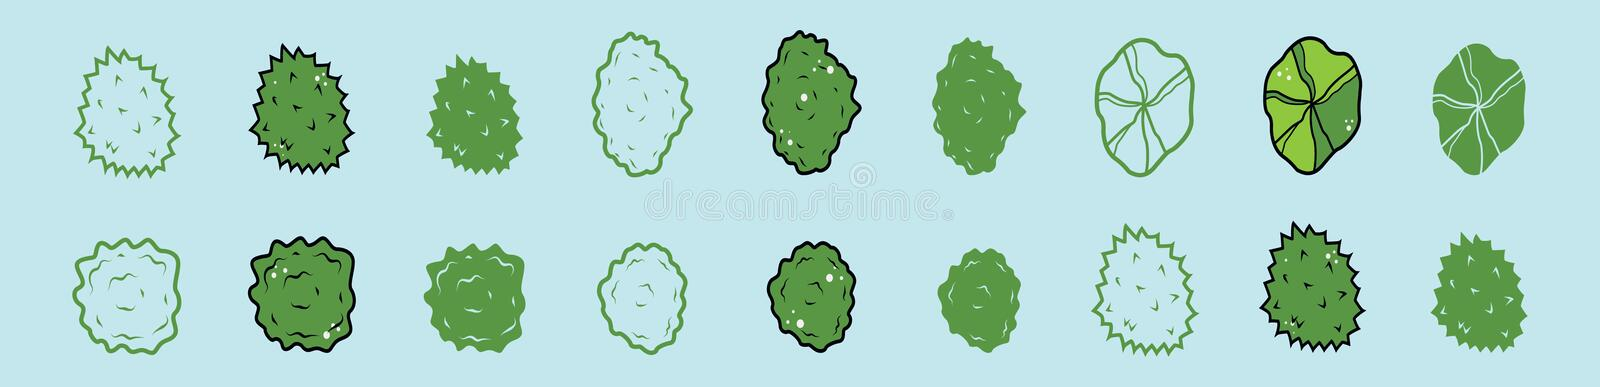 Tree Top View Vector Stock Illustrations 6 782 Tree Top View Vector Stock Illustrations Vectors Clipart Dreamstime Highly detailed 3d model of cartoon tree. dreamstime com